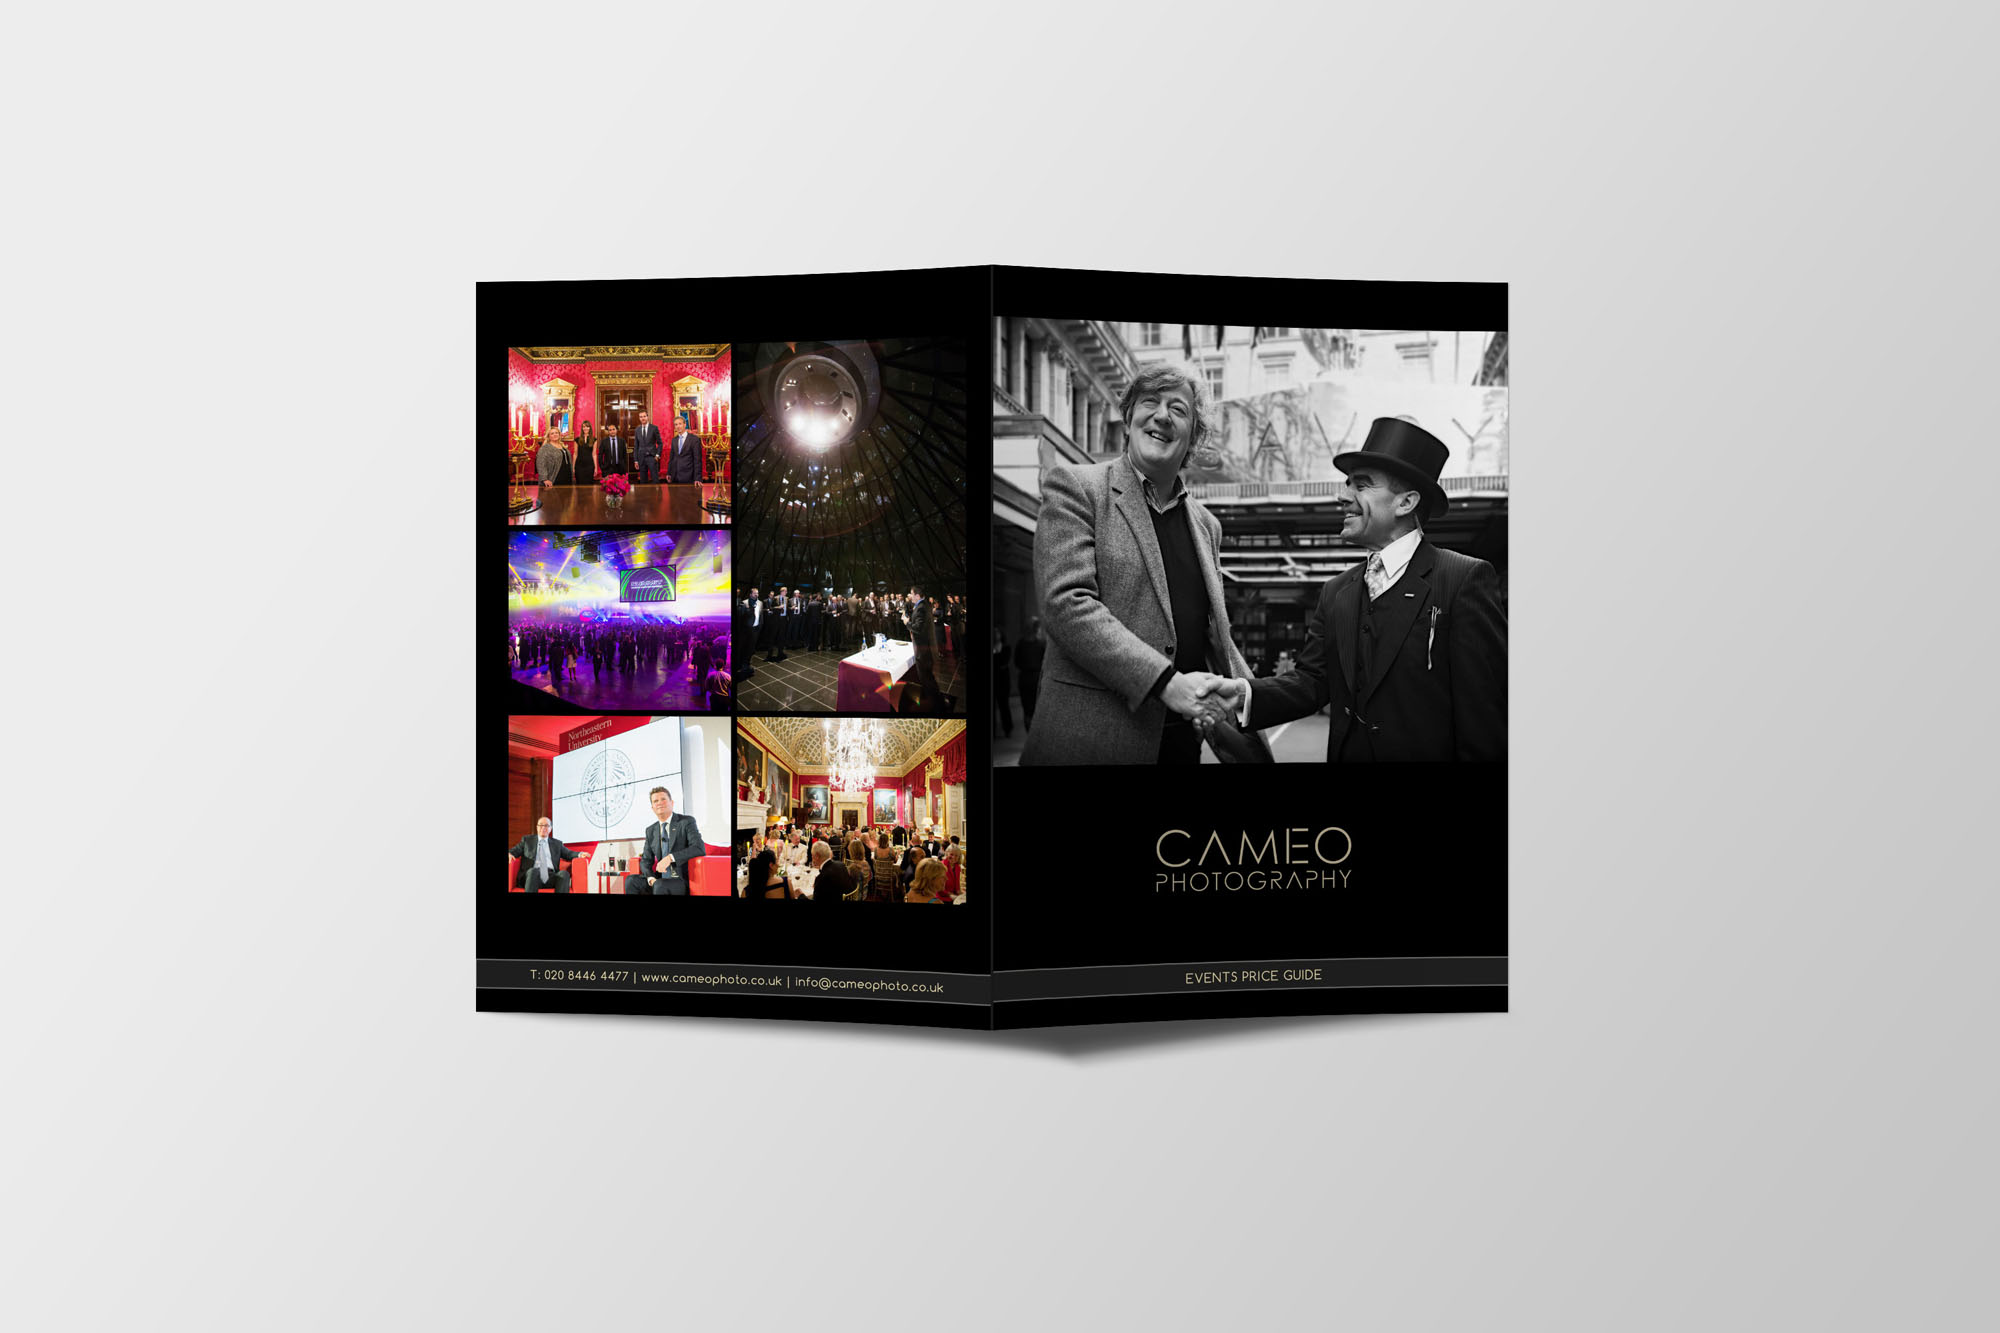 Cameo Photography Marketing and Advertising Design Project